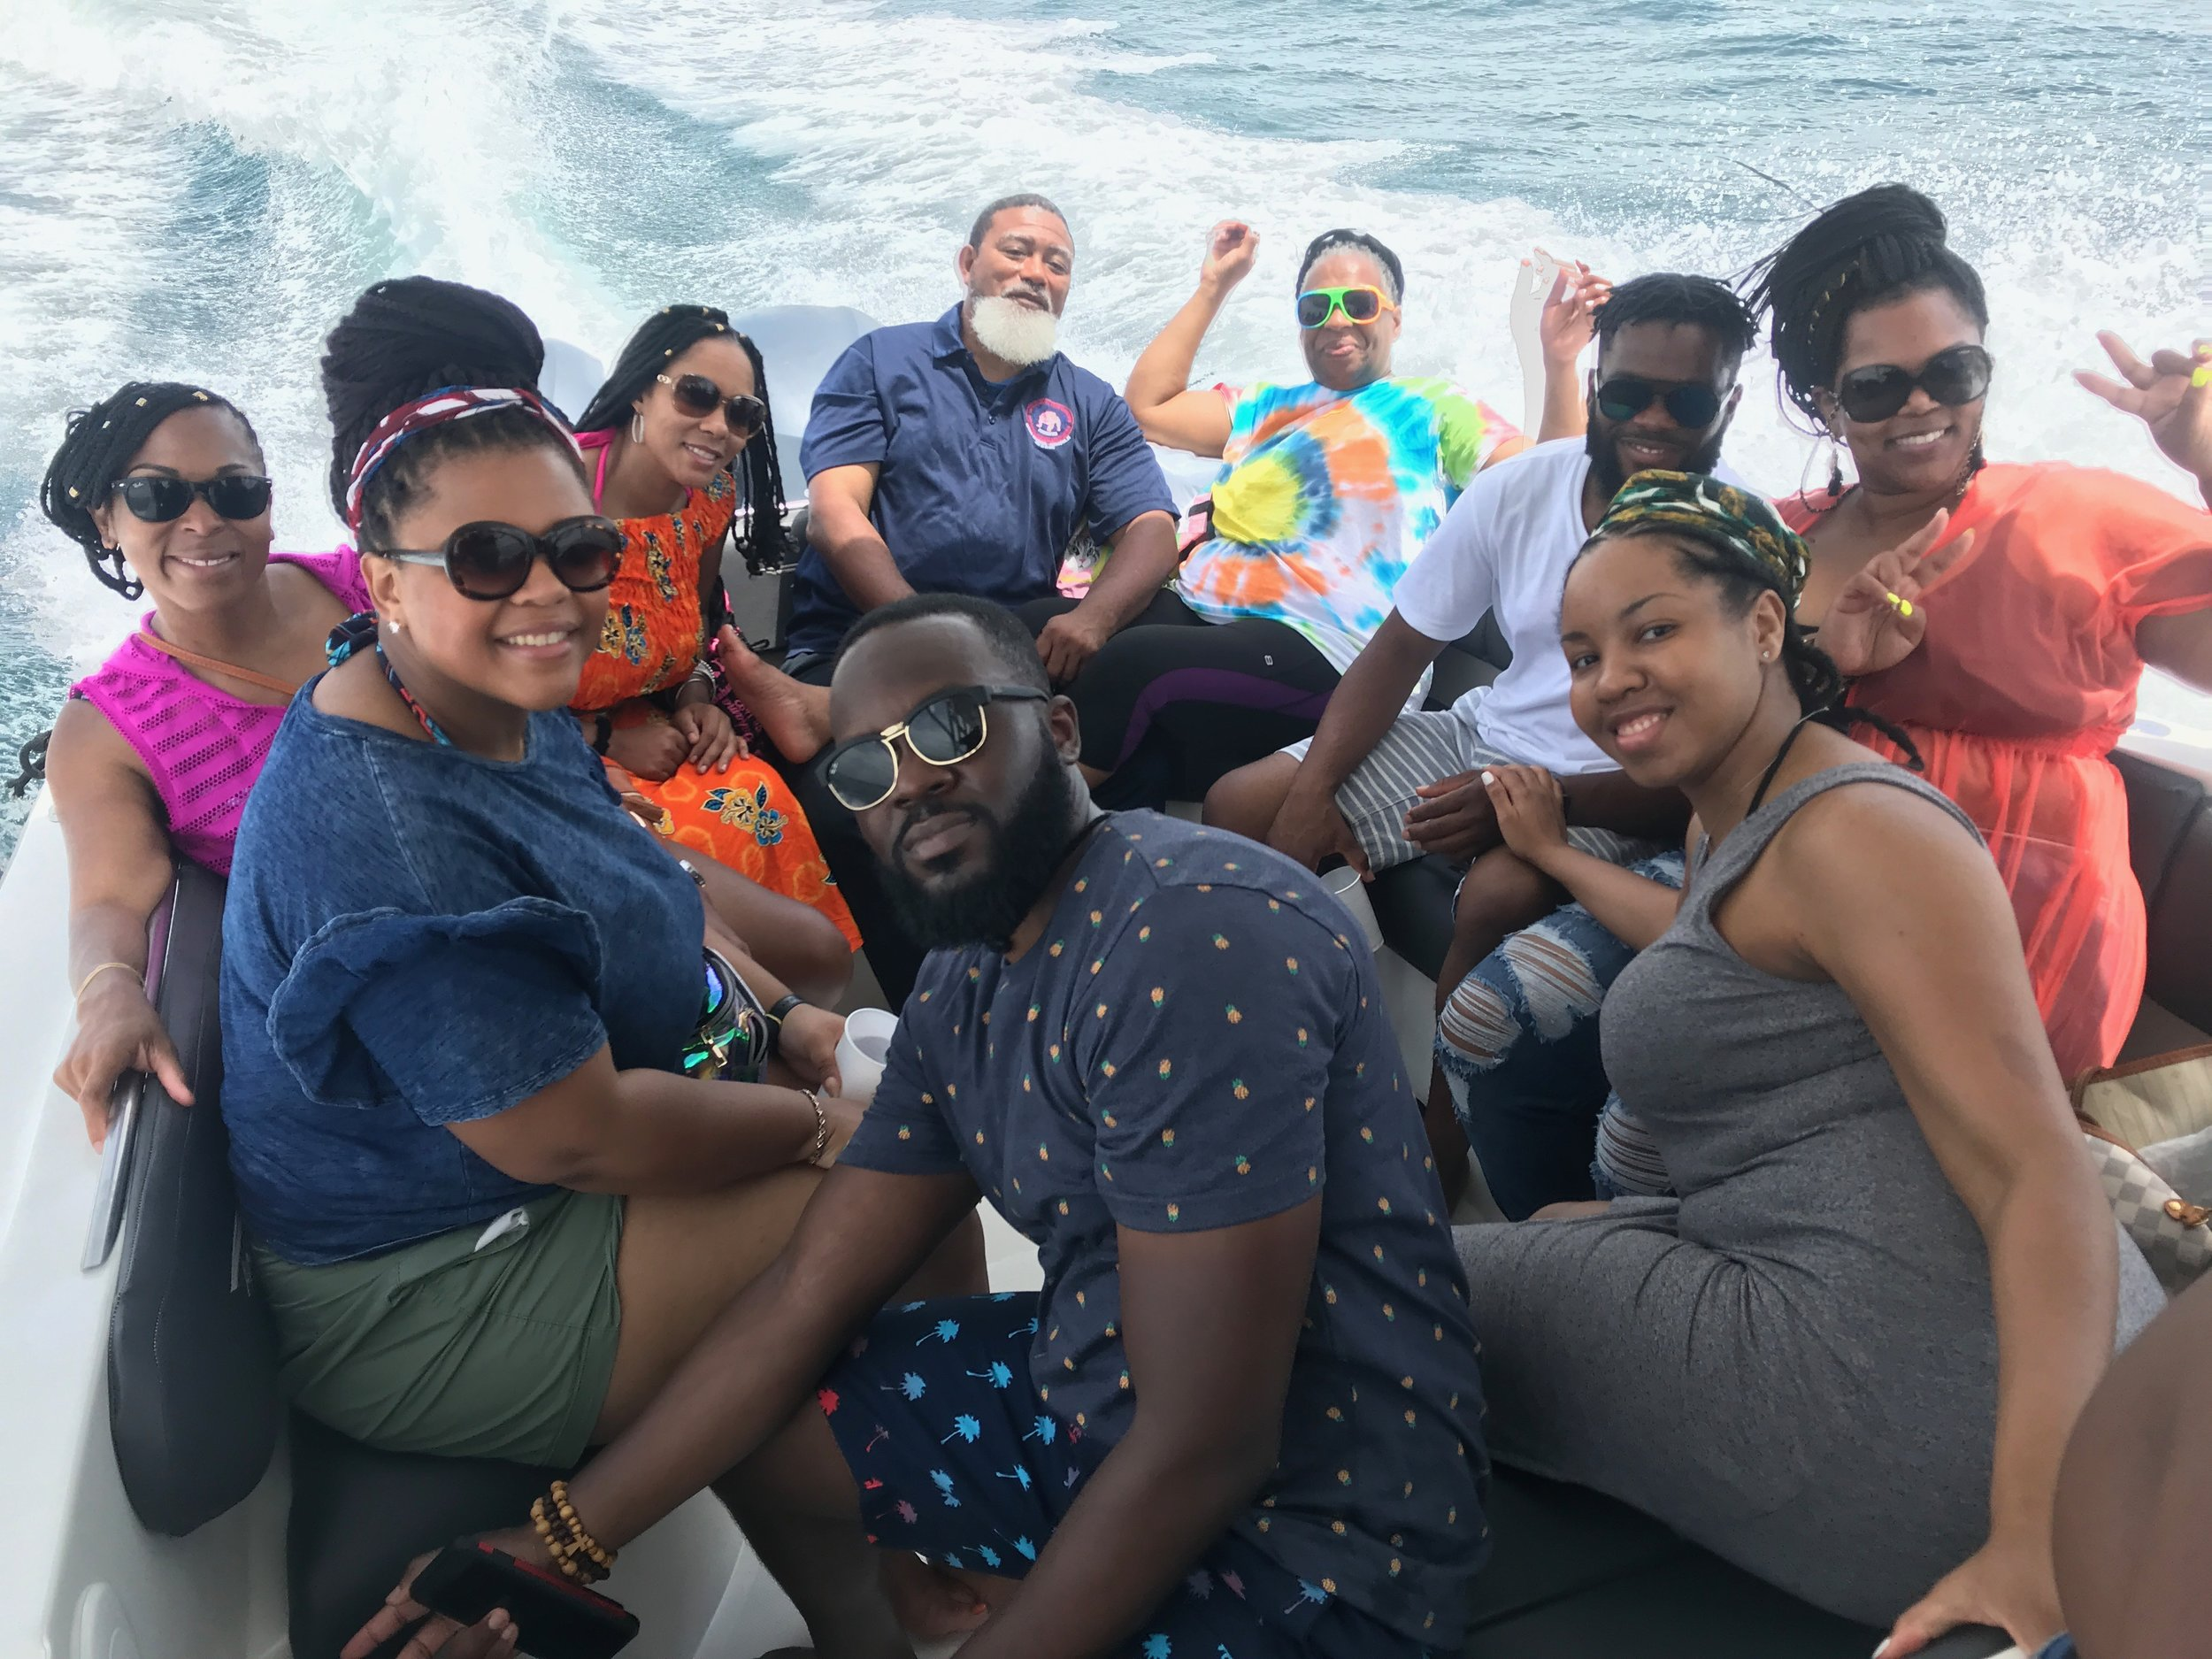 The group of amazing people I met during the beach hopping tour with Experience Real Cartagena tour company.